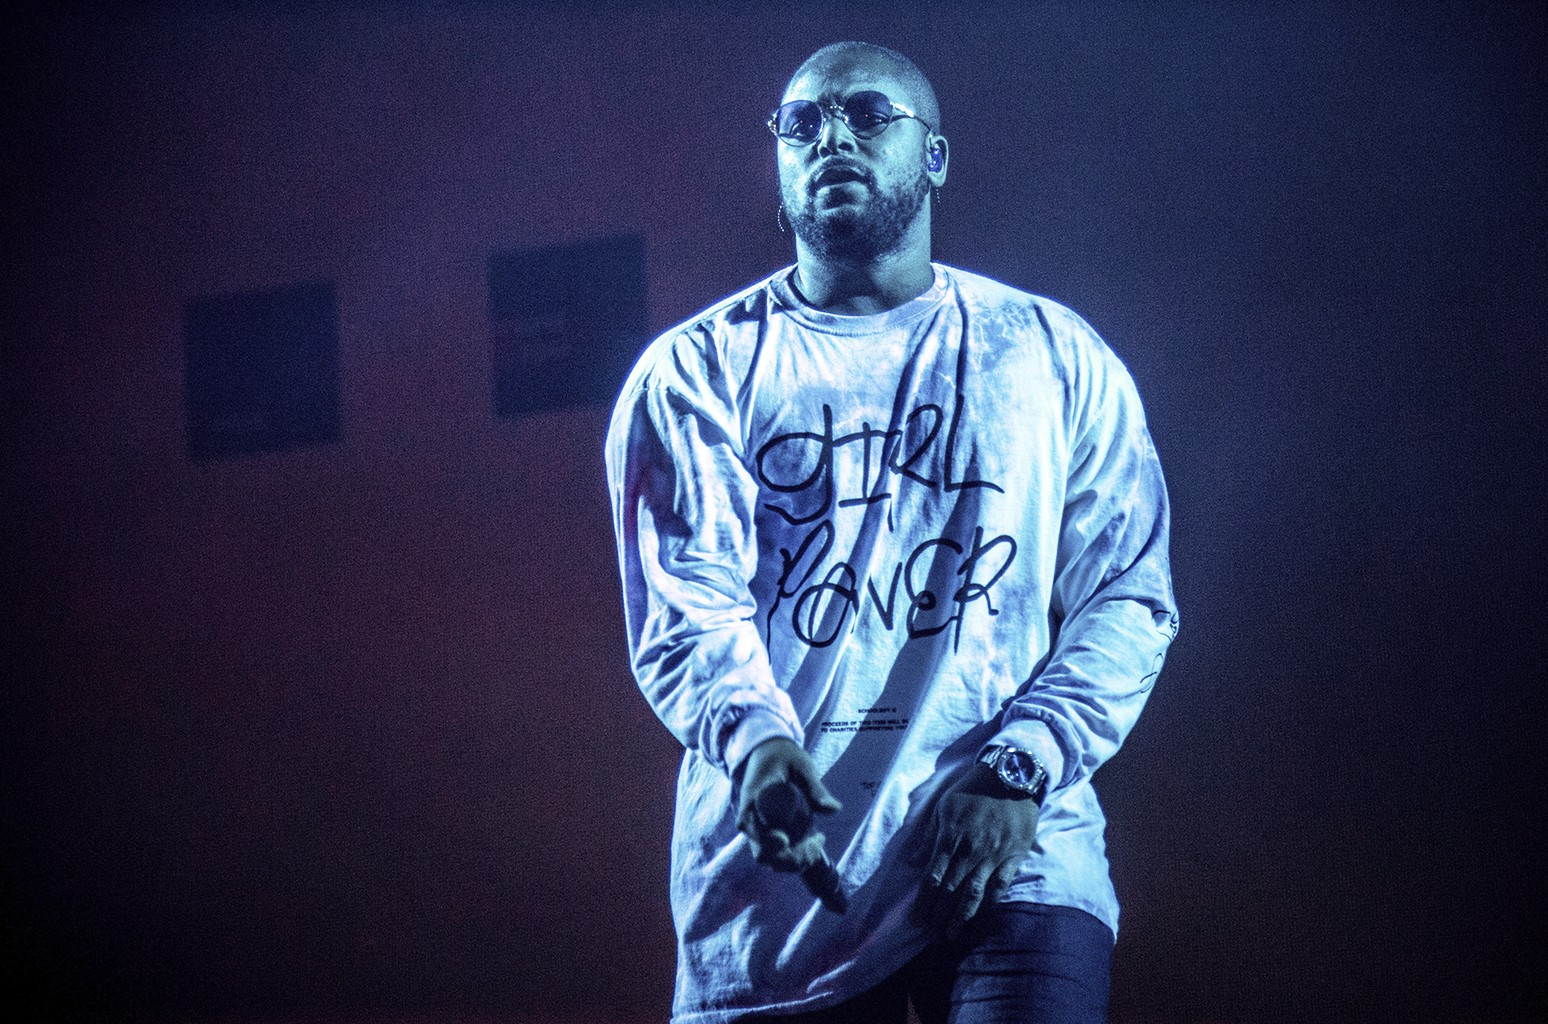 ScHoolboy Q performs at Coachella Music & Arts Festival at the Empire Polo Club on April 15, 2017 in Indio, Calif.